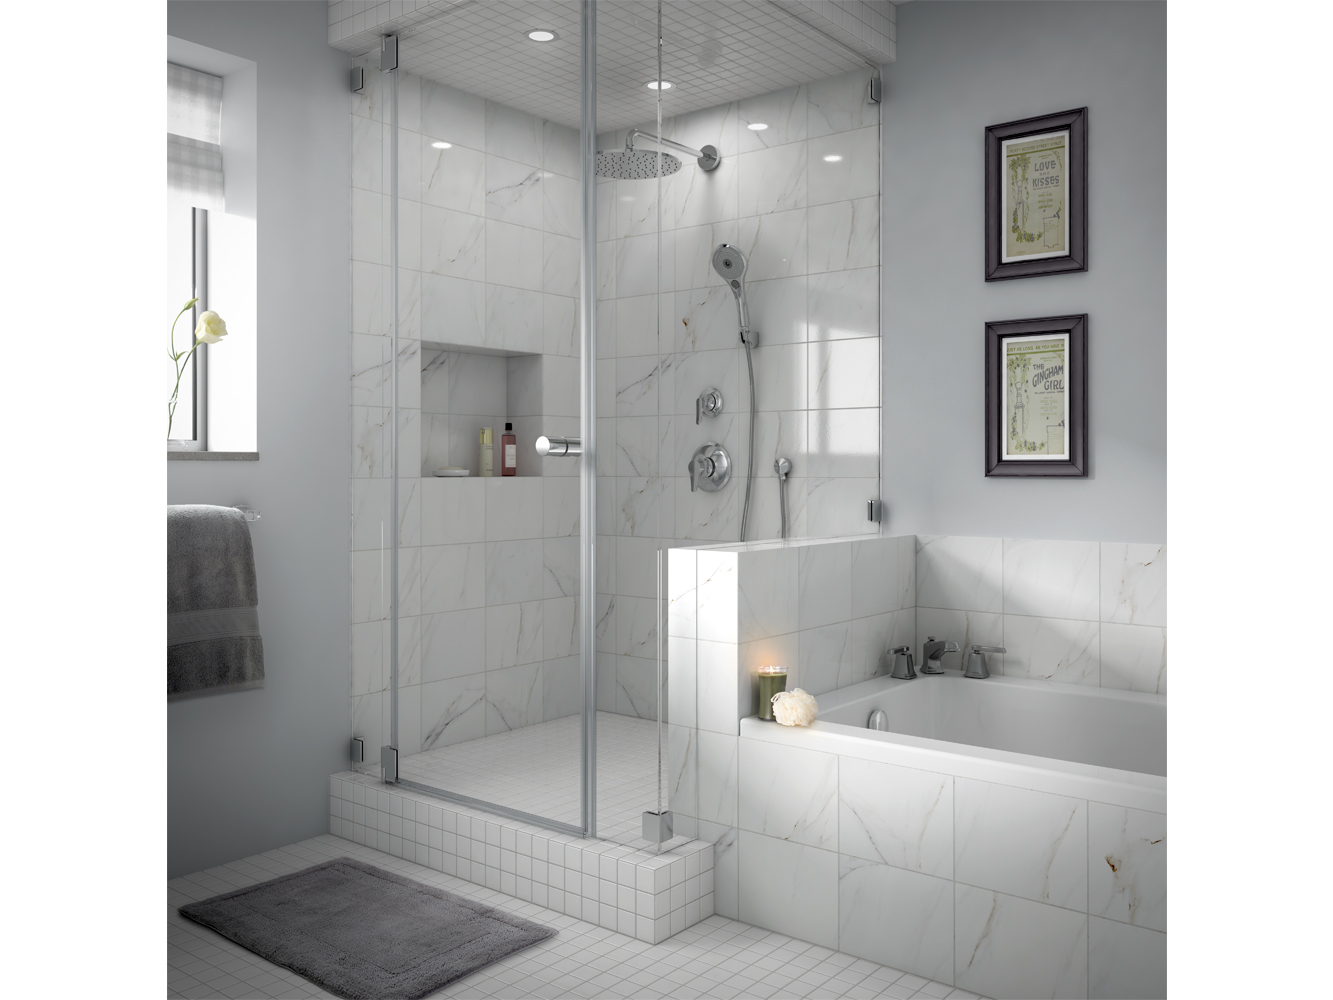 pix-us-cg-marble-tile-shower